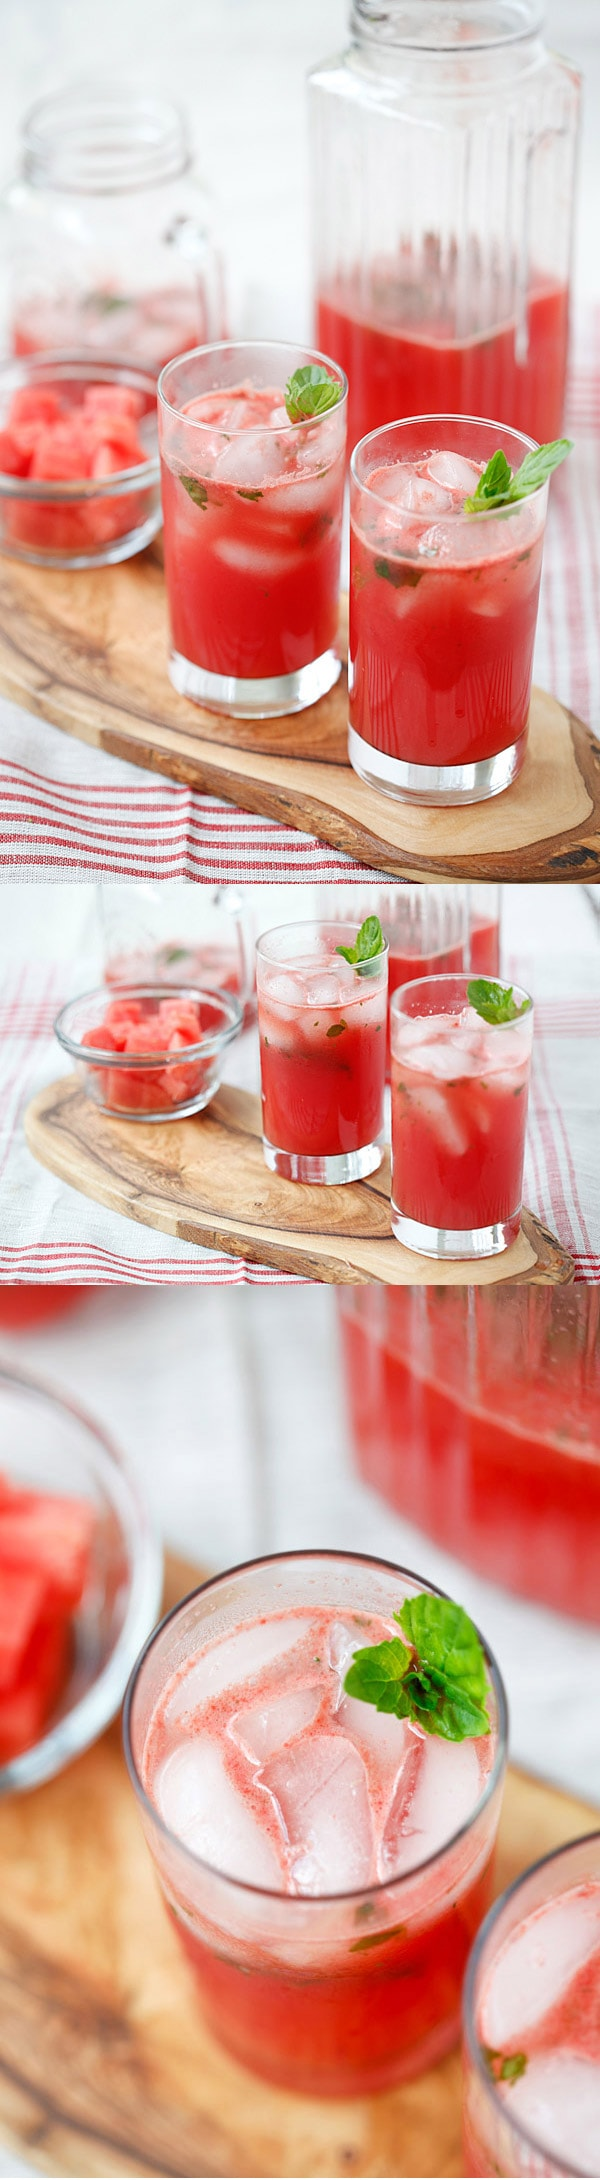 Watermelon-Tequila Cocktail - refreshing and amazing cocktail recipe with fresh watermelon, tequila, lime juice and mint, takes 15 mins   rasamalaysia.com